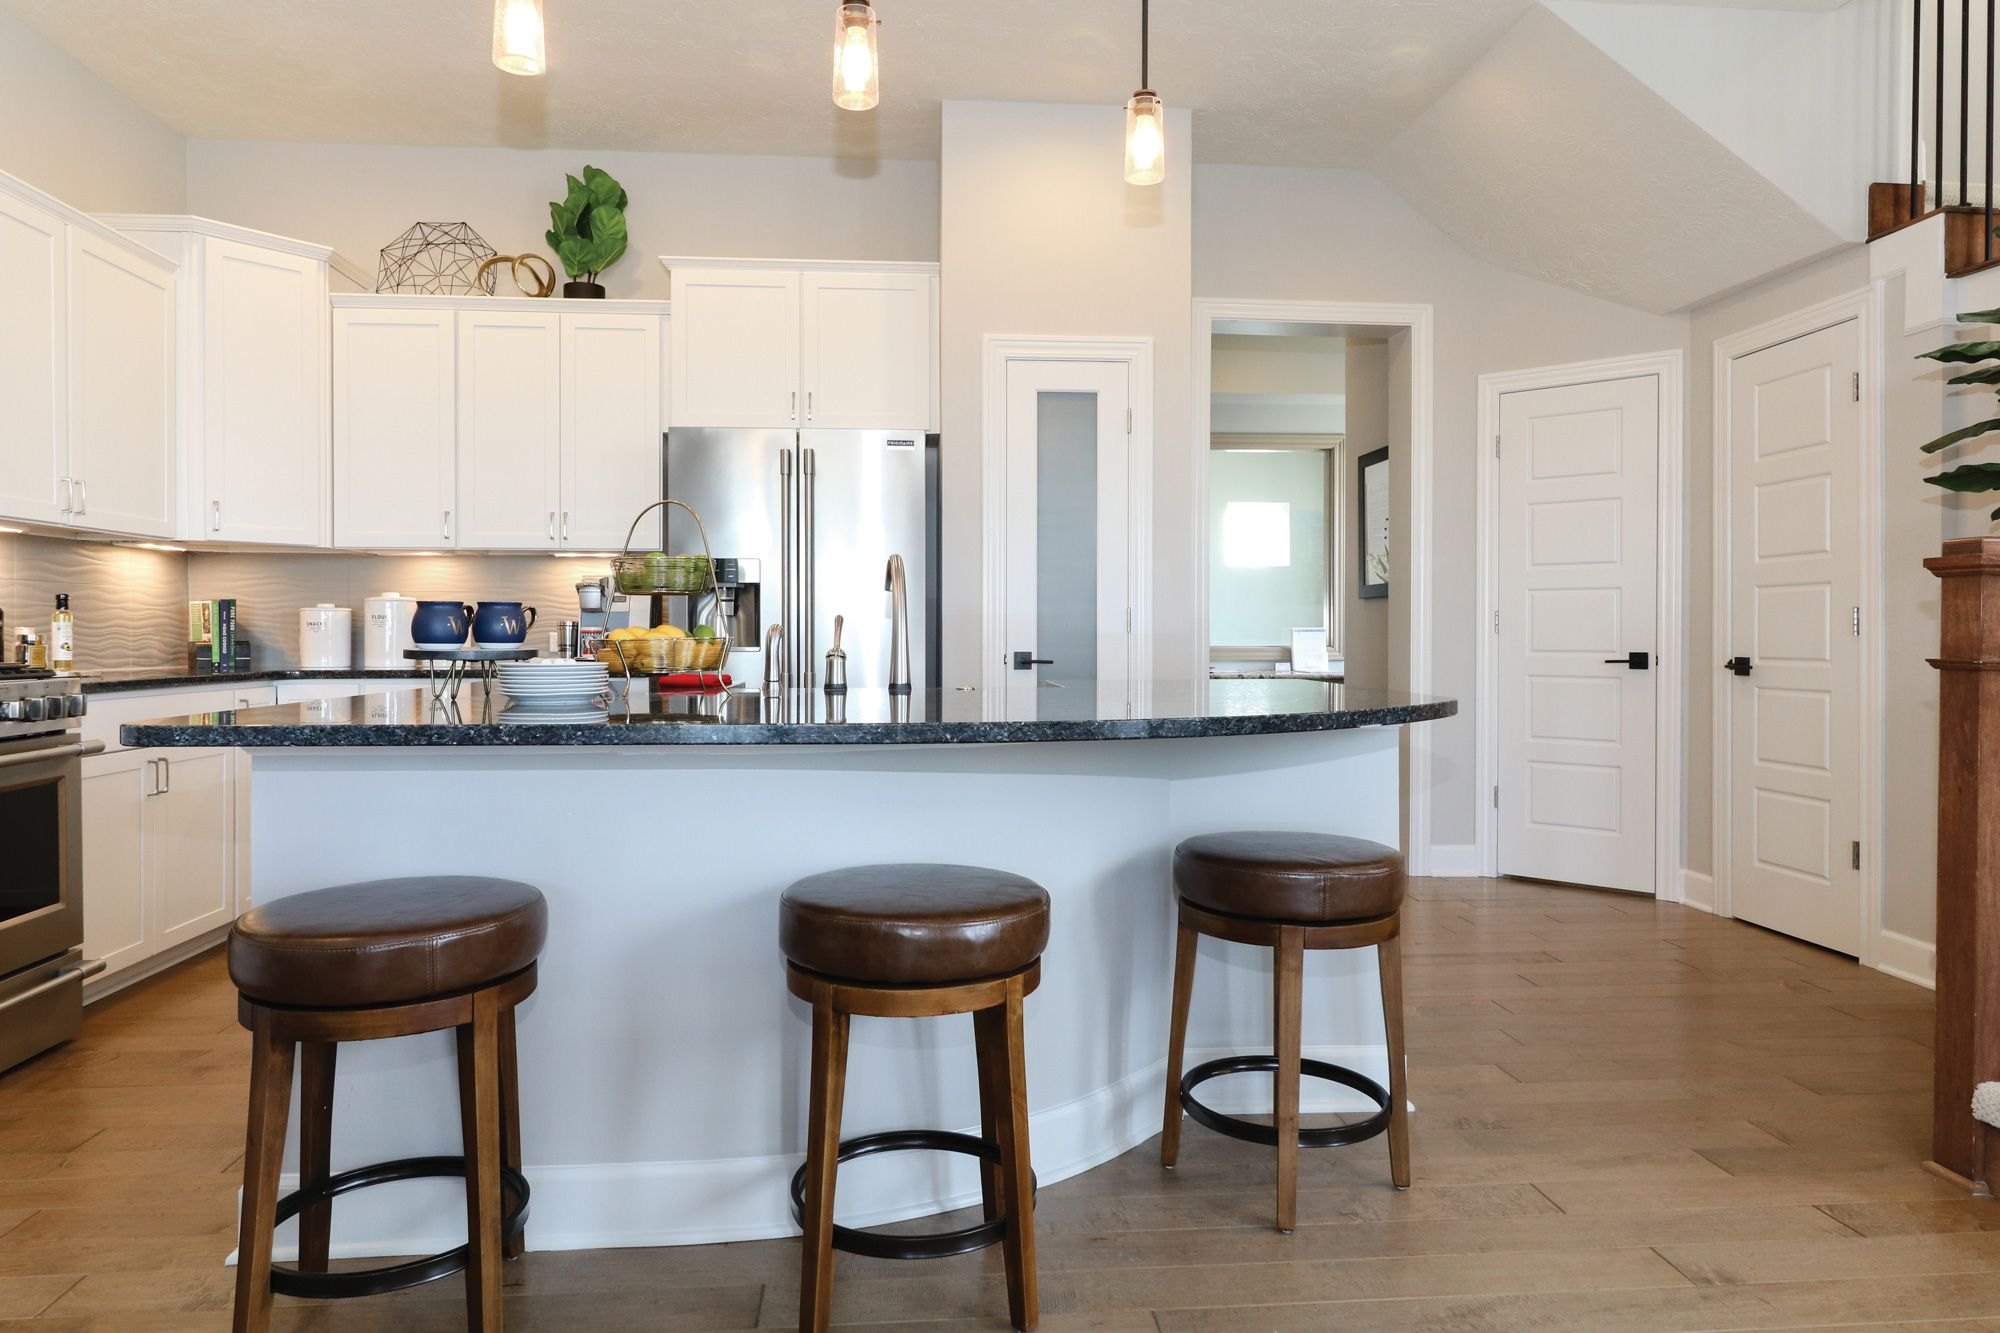 The Alamanni is located in Fishers, IN. The white cabinets ...